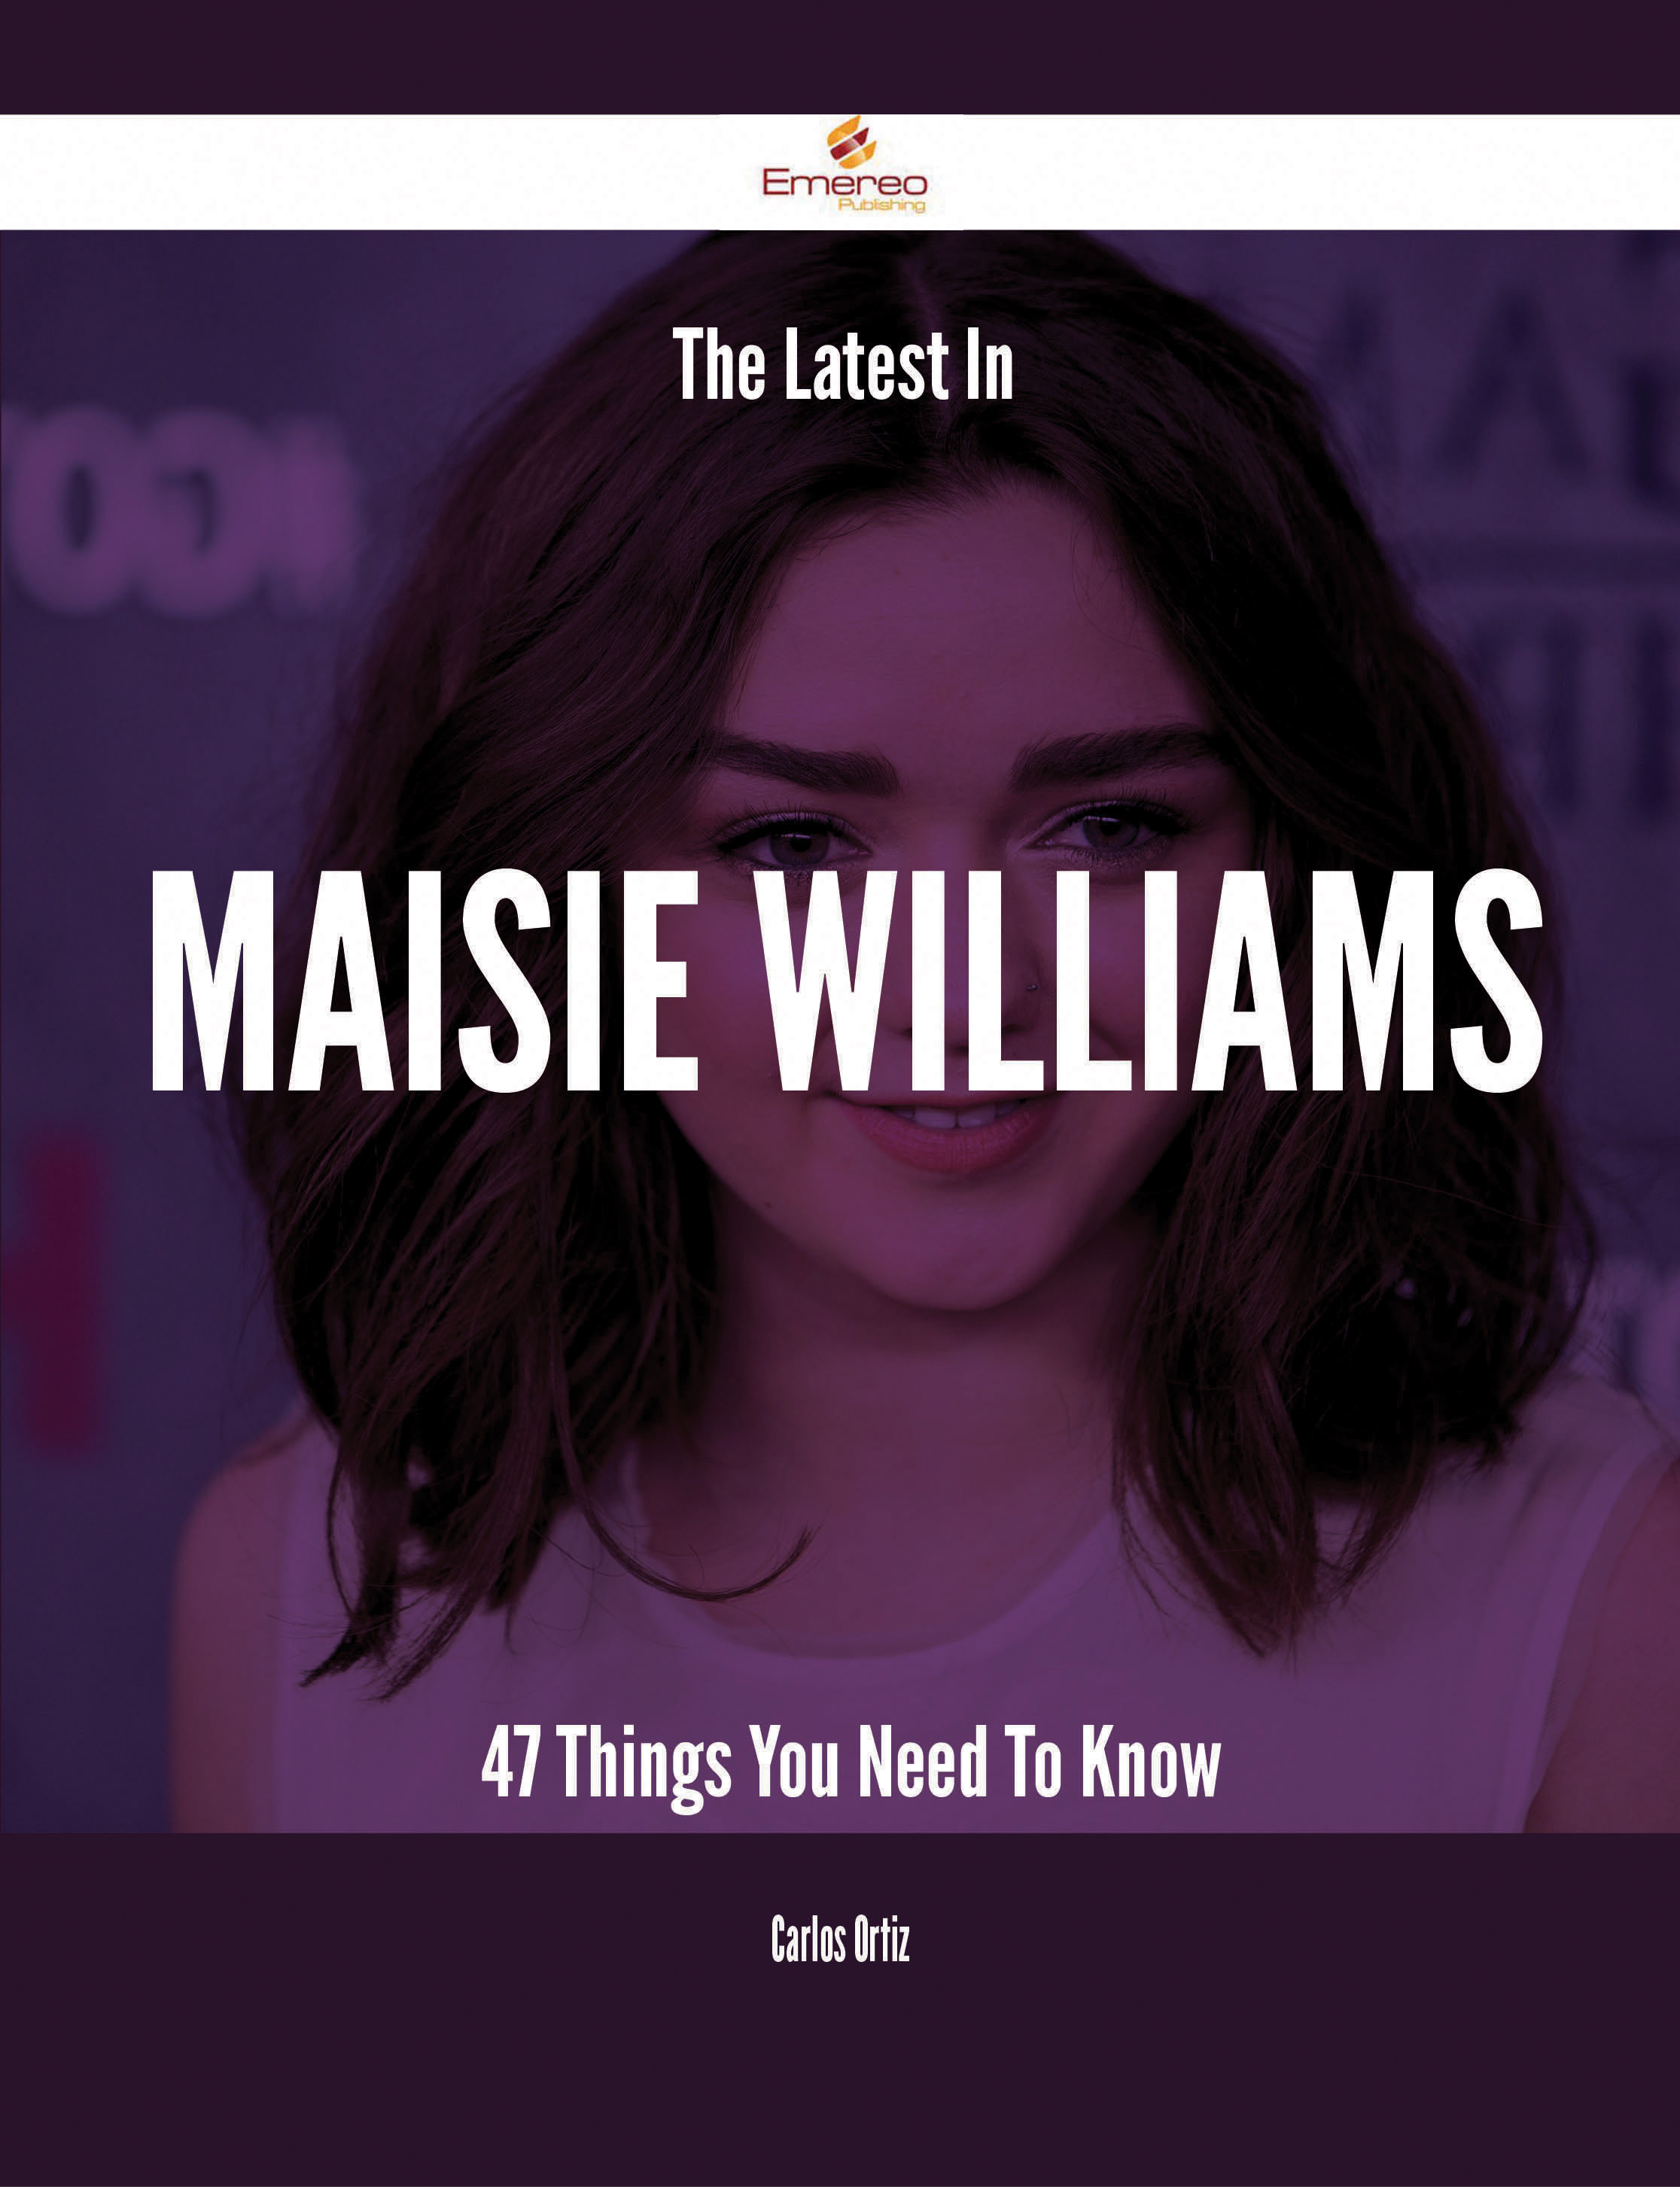 The Latest In Maisie Williams - 47 Things You Need To Know